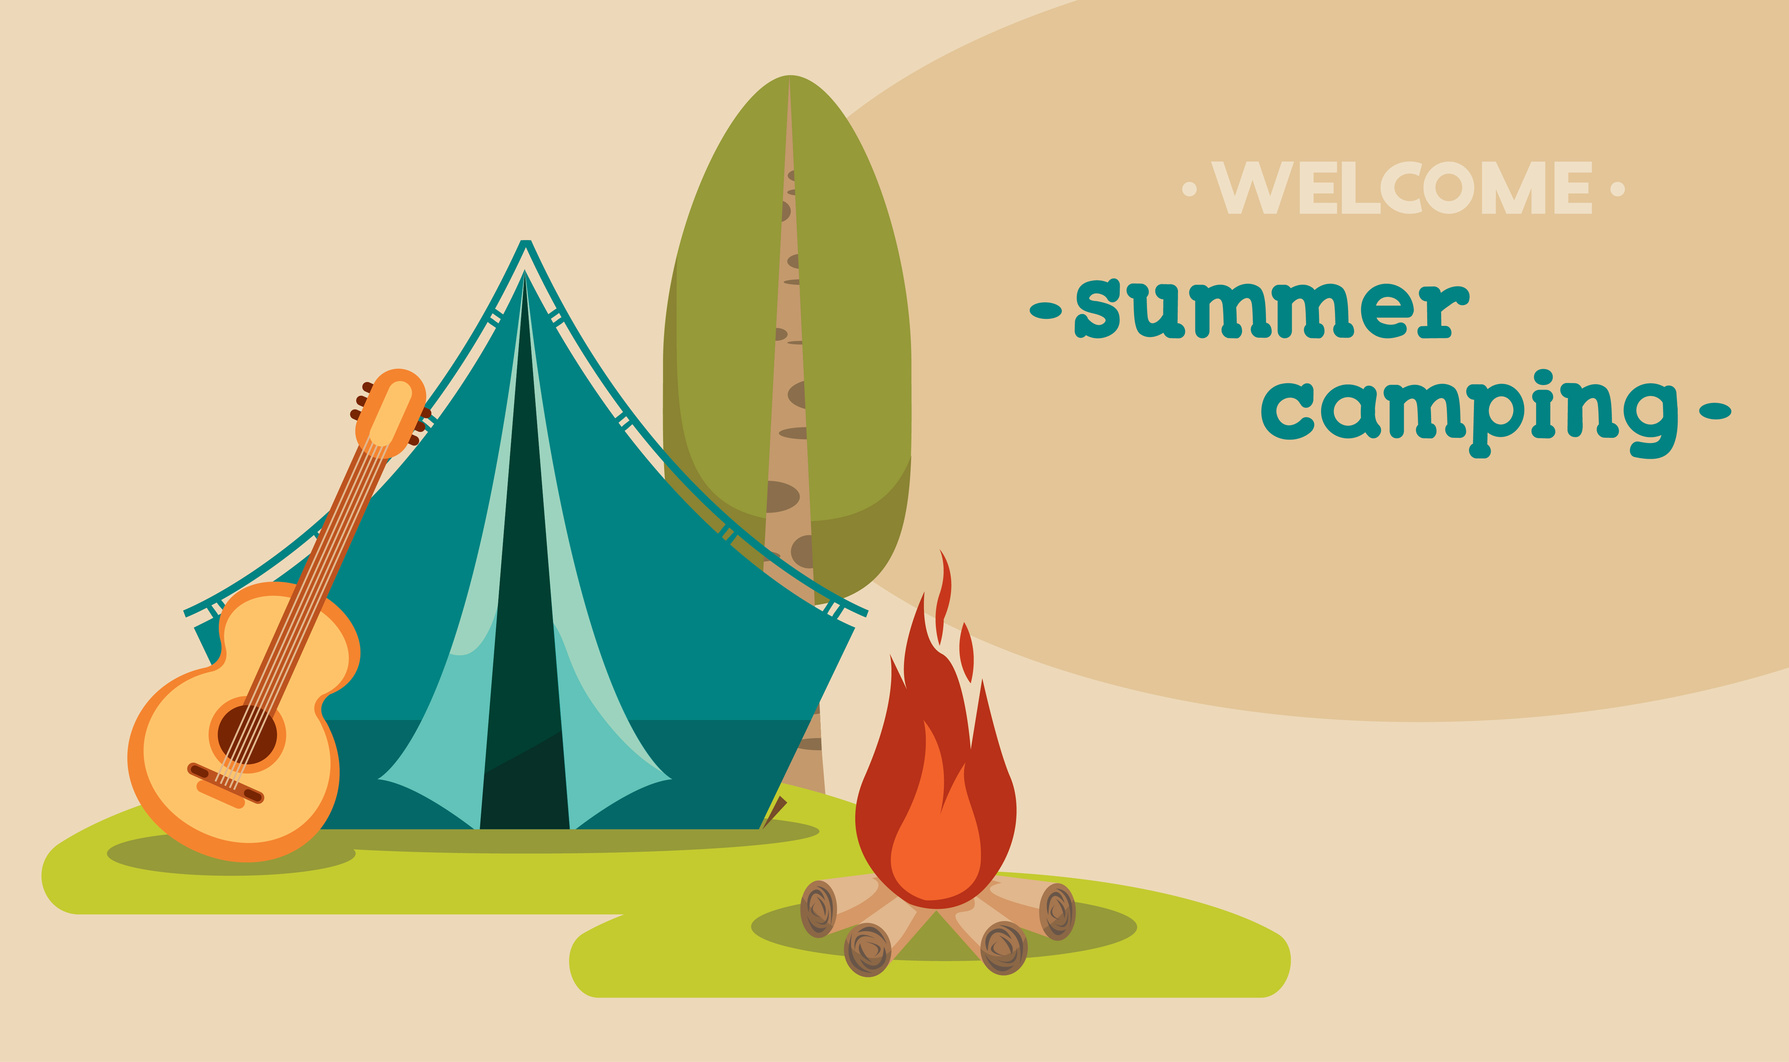 Vector Illustration With Blue Tent, Guitar And Campfire On A Green Grass. Summer Tourist Camping.